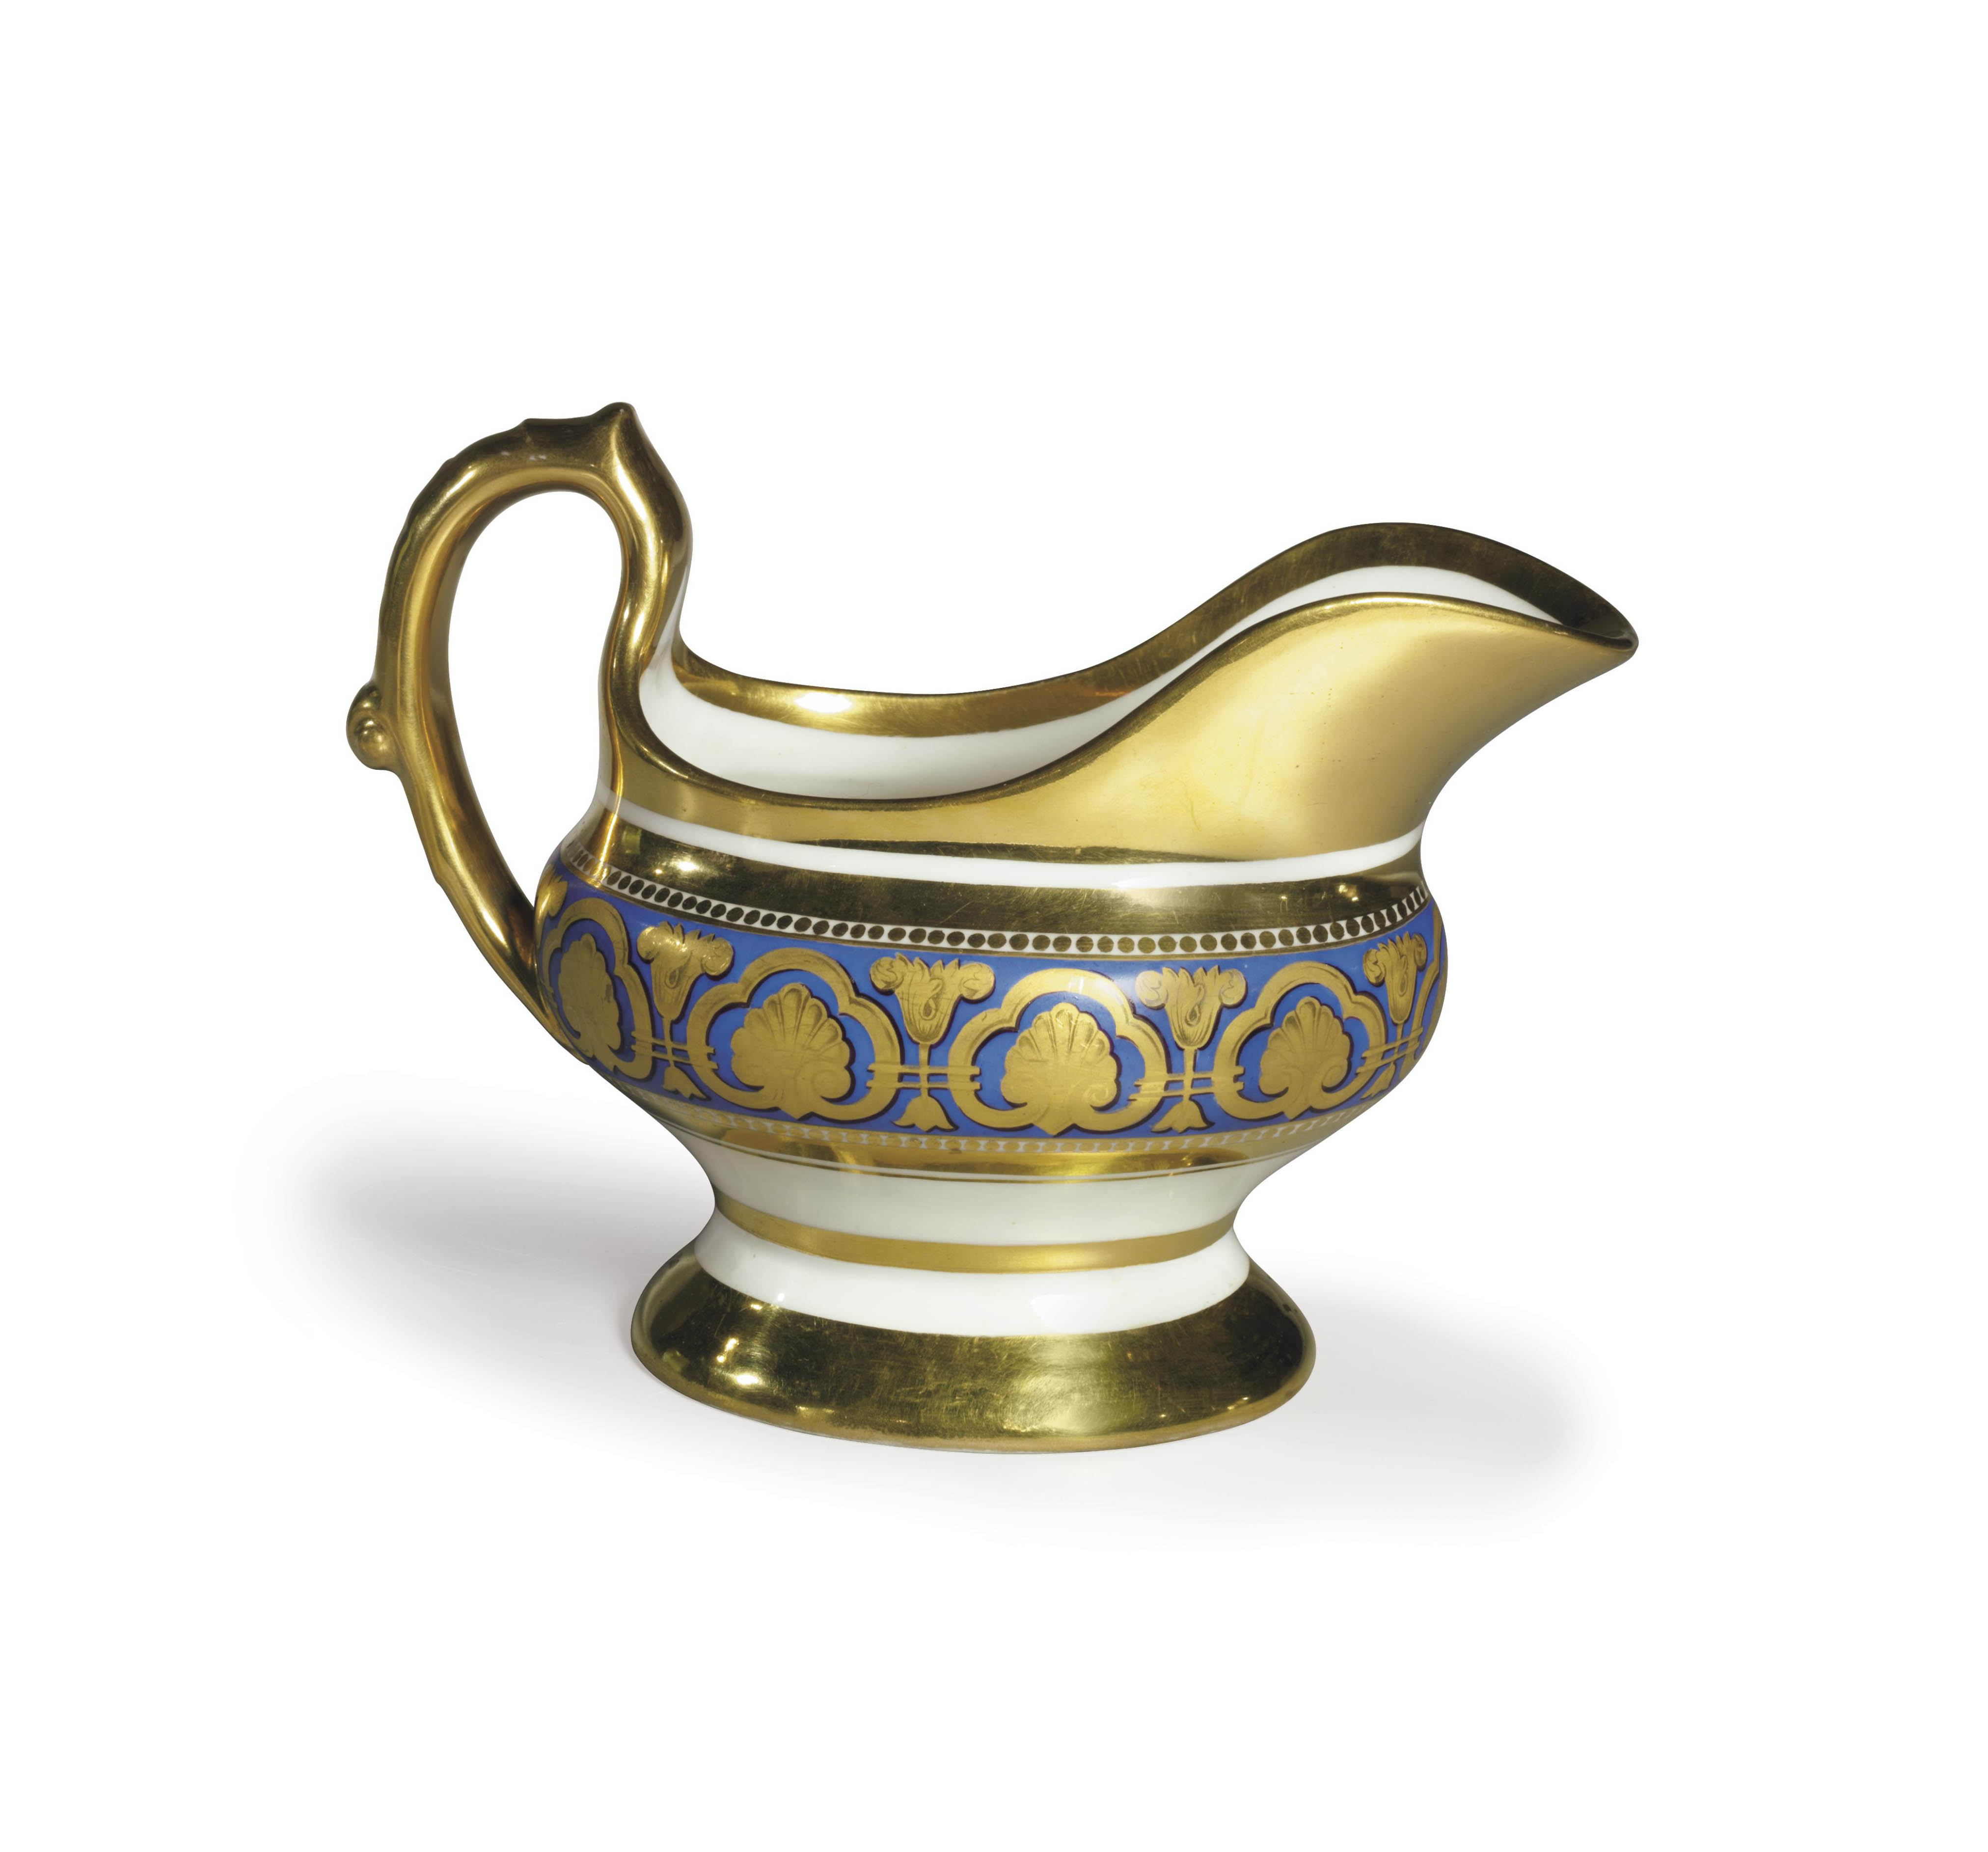 A PORCELAIN SAUCEBOAT FROM THE ROPSHA SERVICE